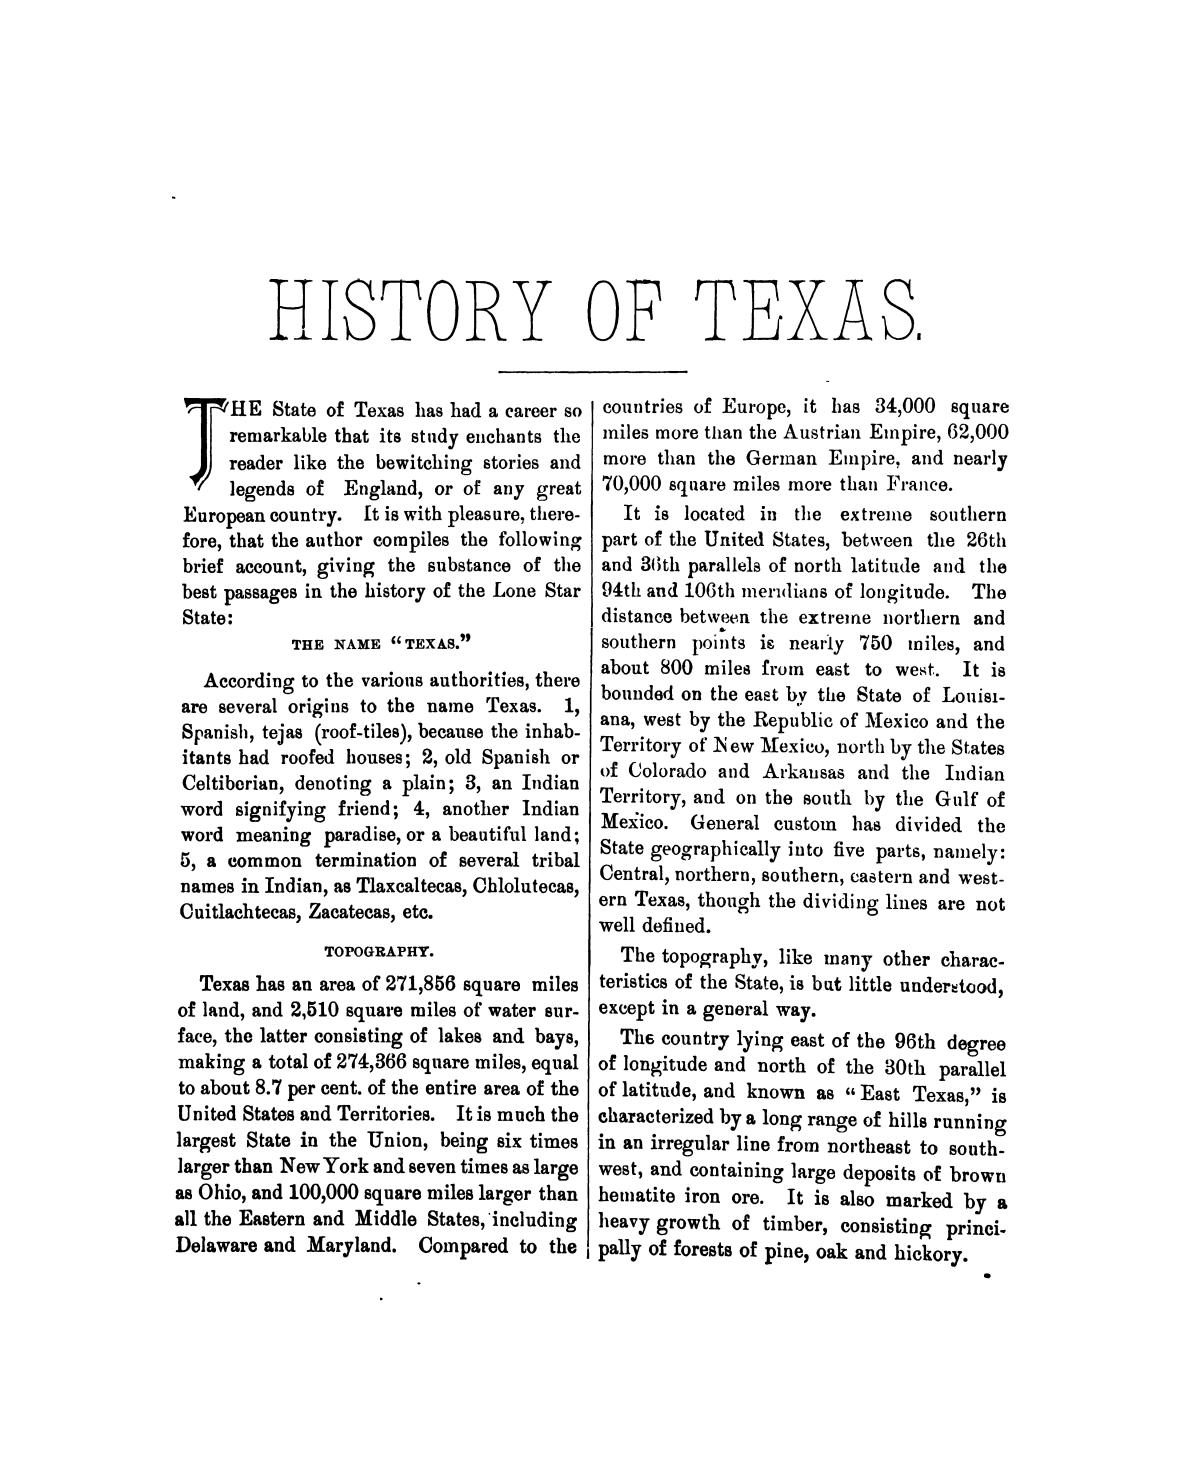 History of Texas, together with a biographical history of Milam, Williamson, Bastrop, Travis, Lee and Burleson counties : containing a concise history of the state, with portraits and biographies of prominent citizens of the above named counties, and personal histories of many of the early settlers and leading families                                                                                                      9